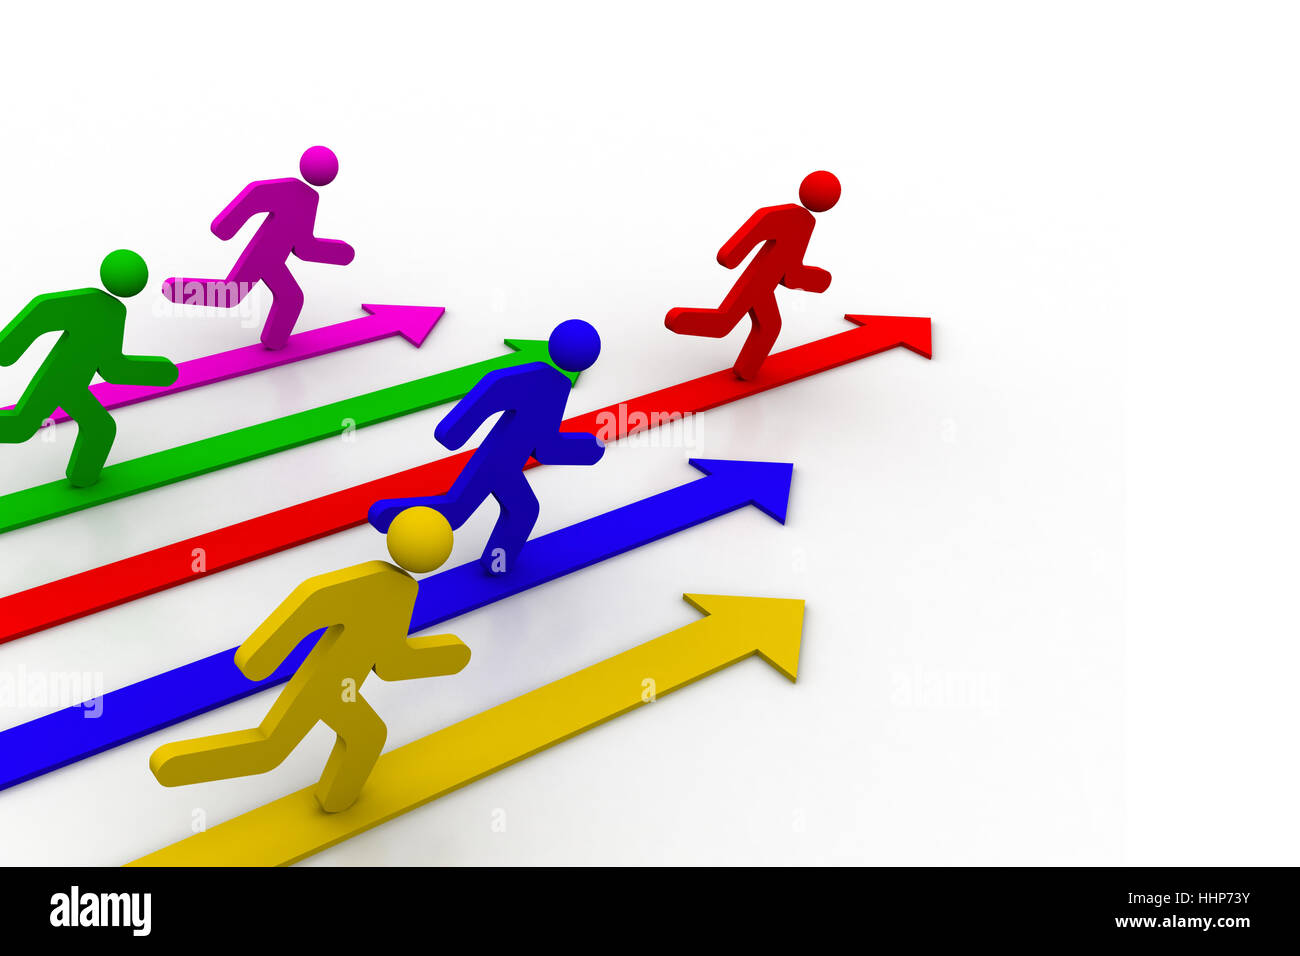 humans, human beings, people, folk, persons, human, human being, achievement, - Stock Image